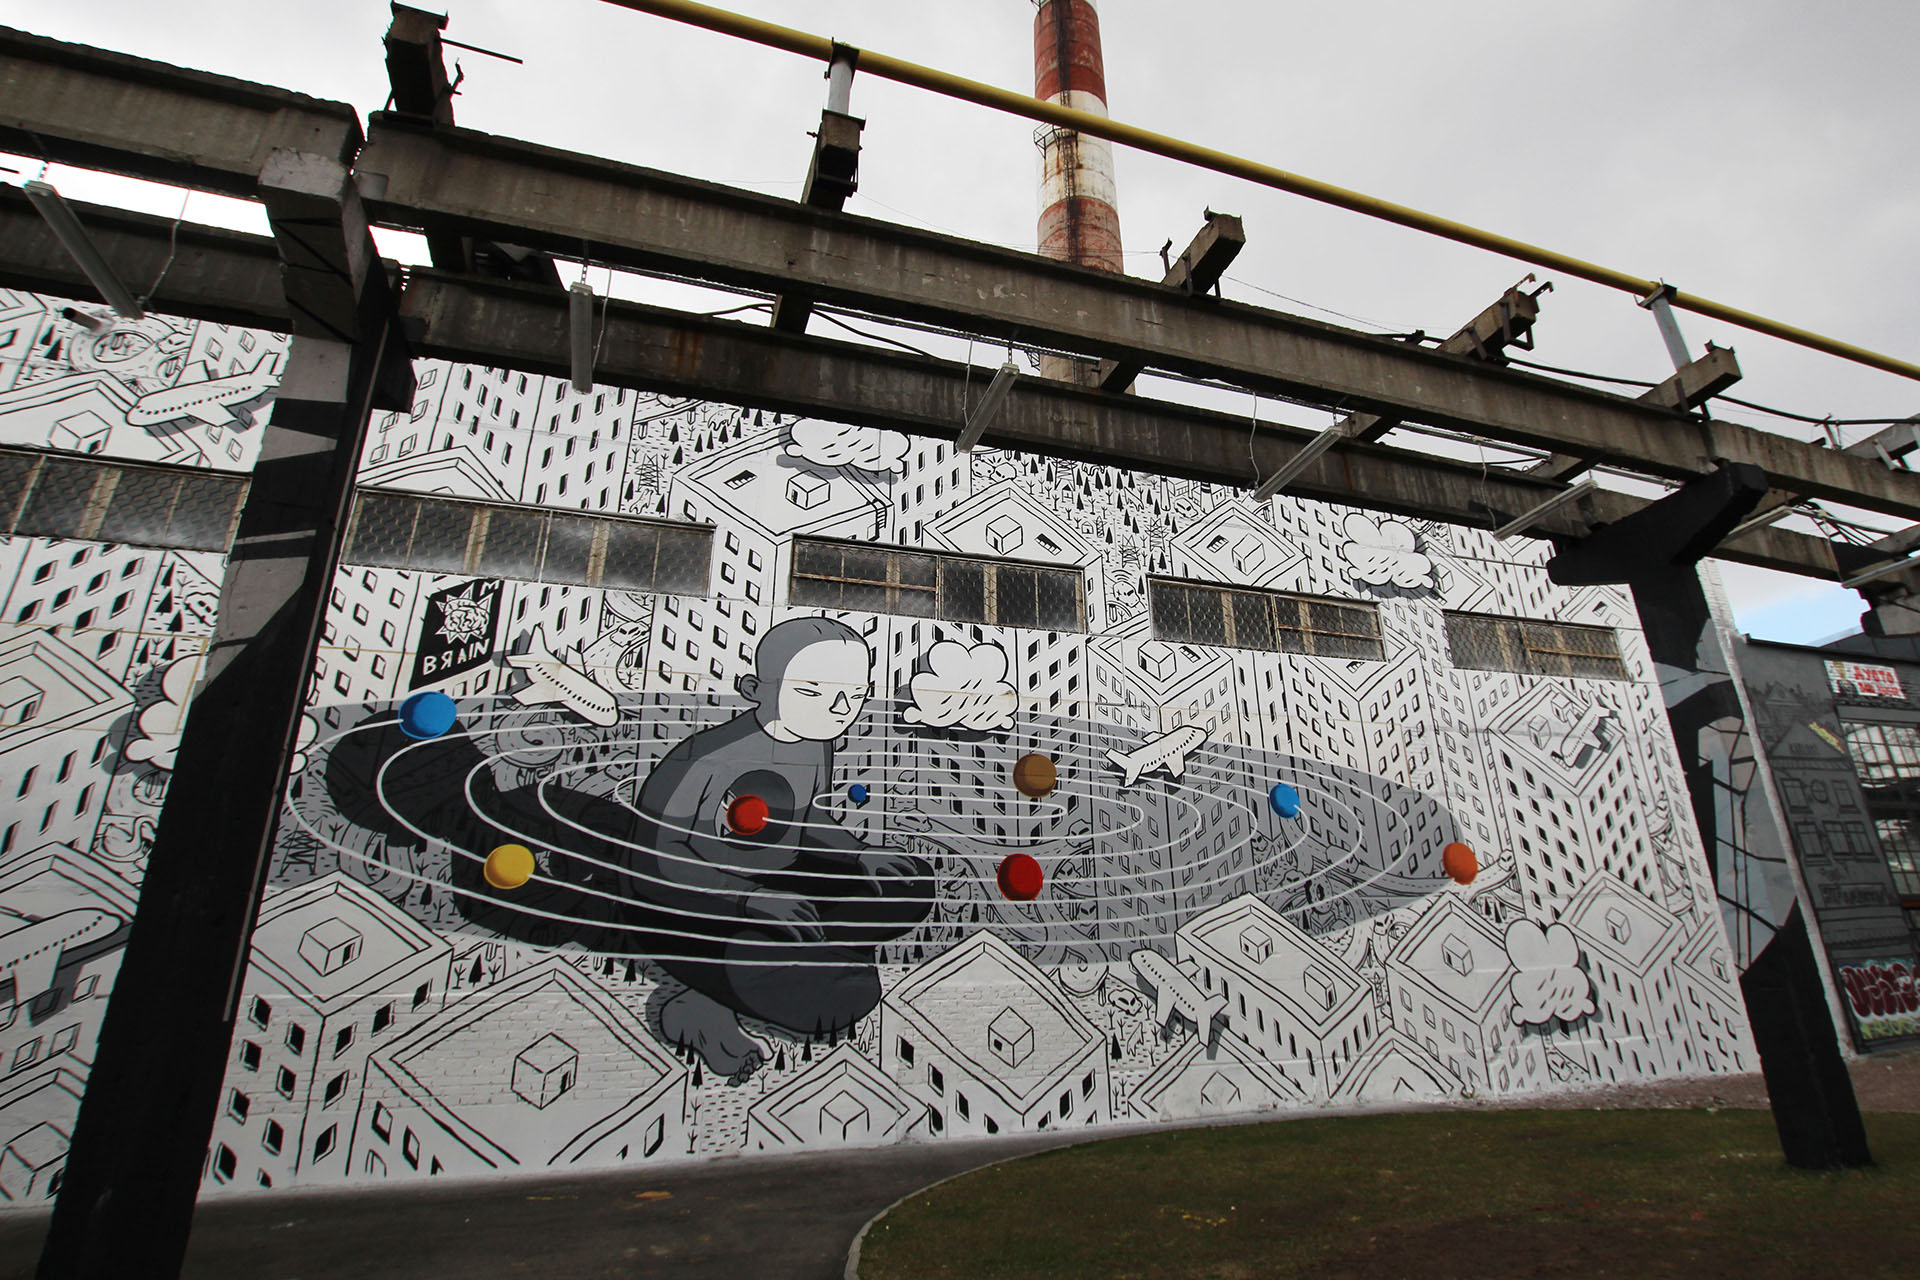 Trend Millo painted this outdoor mural for the exhibition ucBrighter Days Are Coming ud held by the Street Art Museum and Goethe Institut curated by SAM